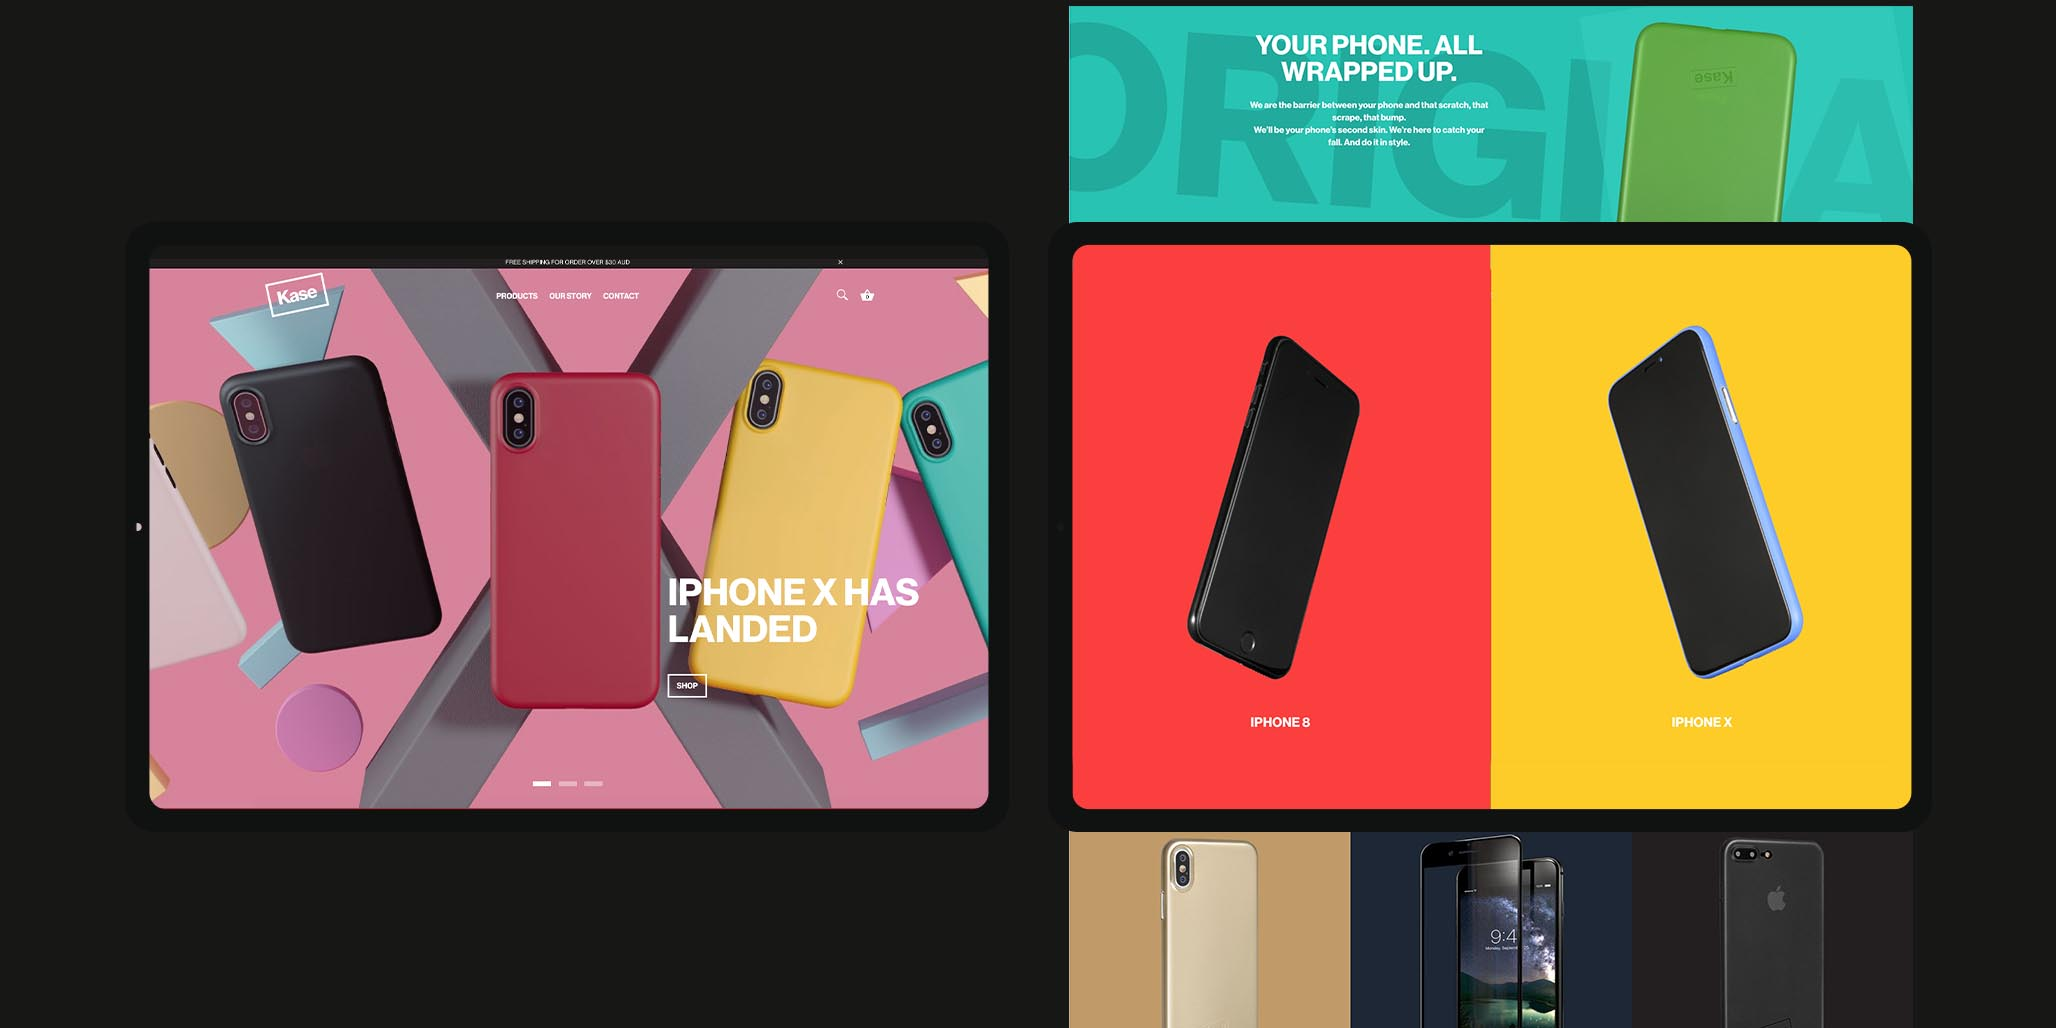 Brand Strategy, Brand Identity, e-Commerce Website Design and Development project for electronic consumer goods company in Sydney, Australia, image D